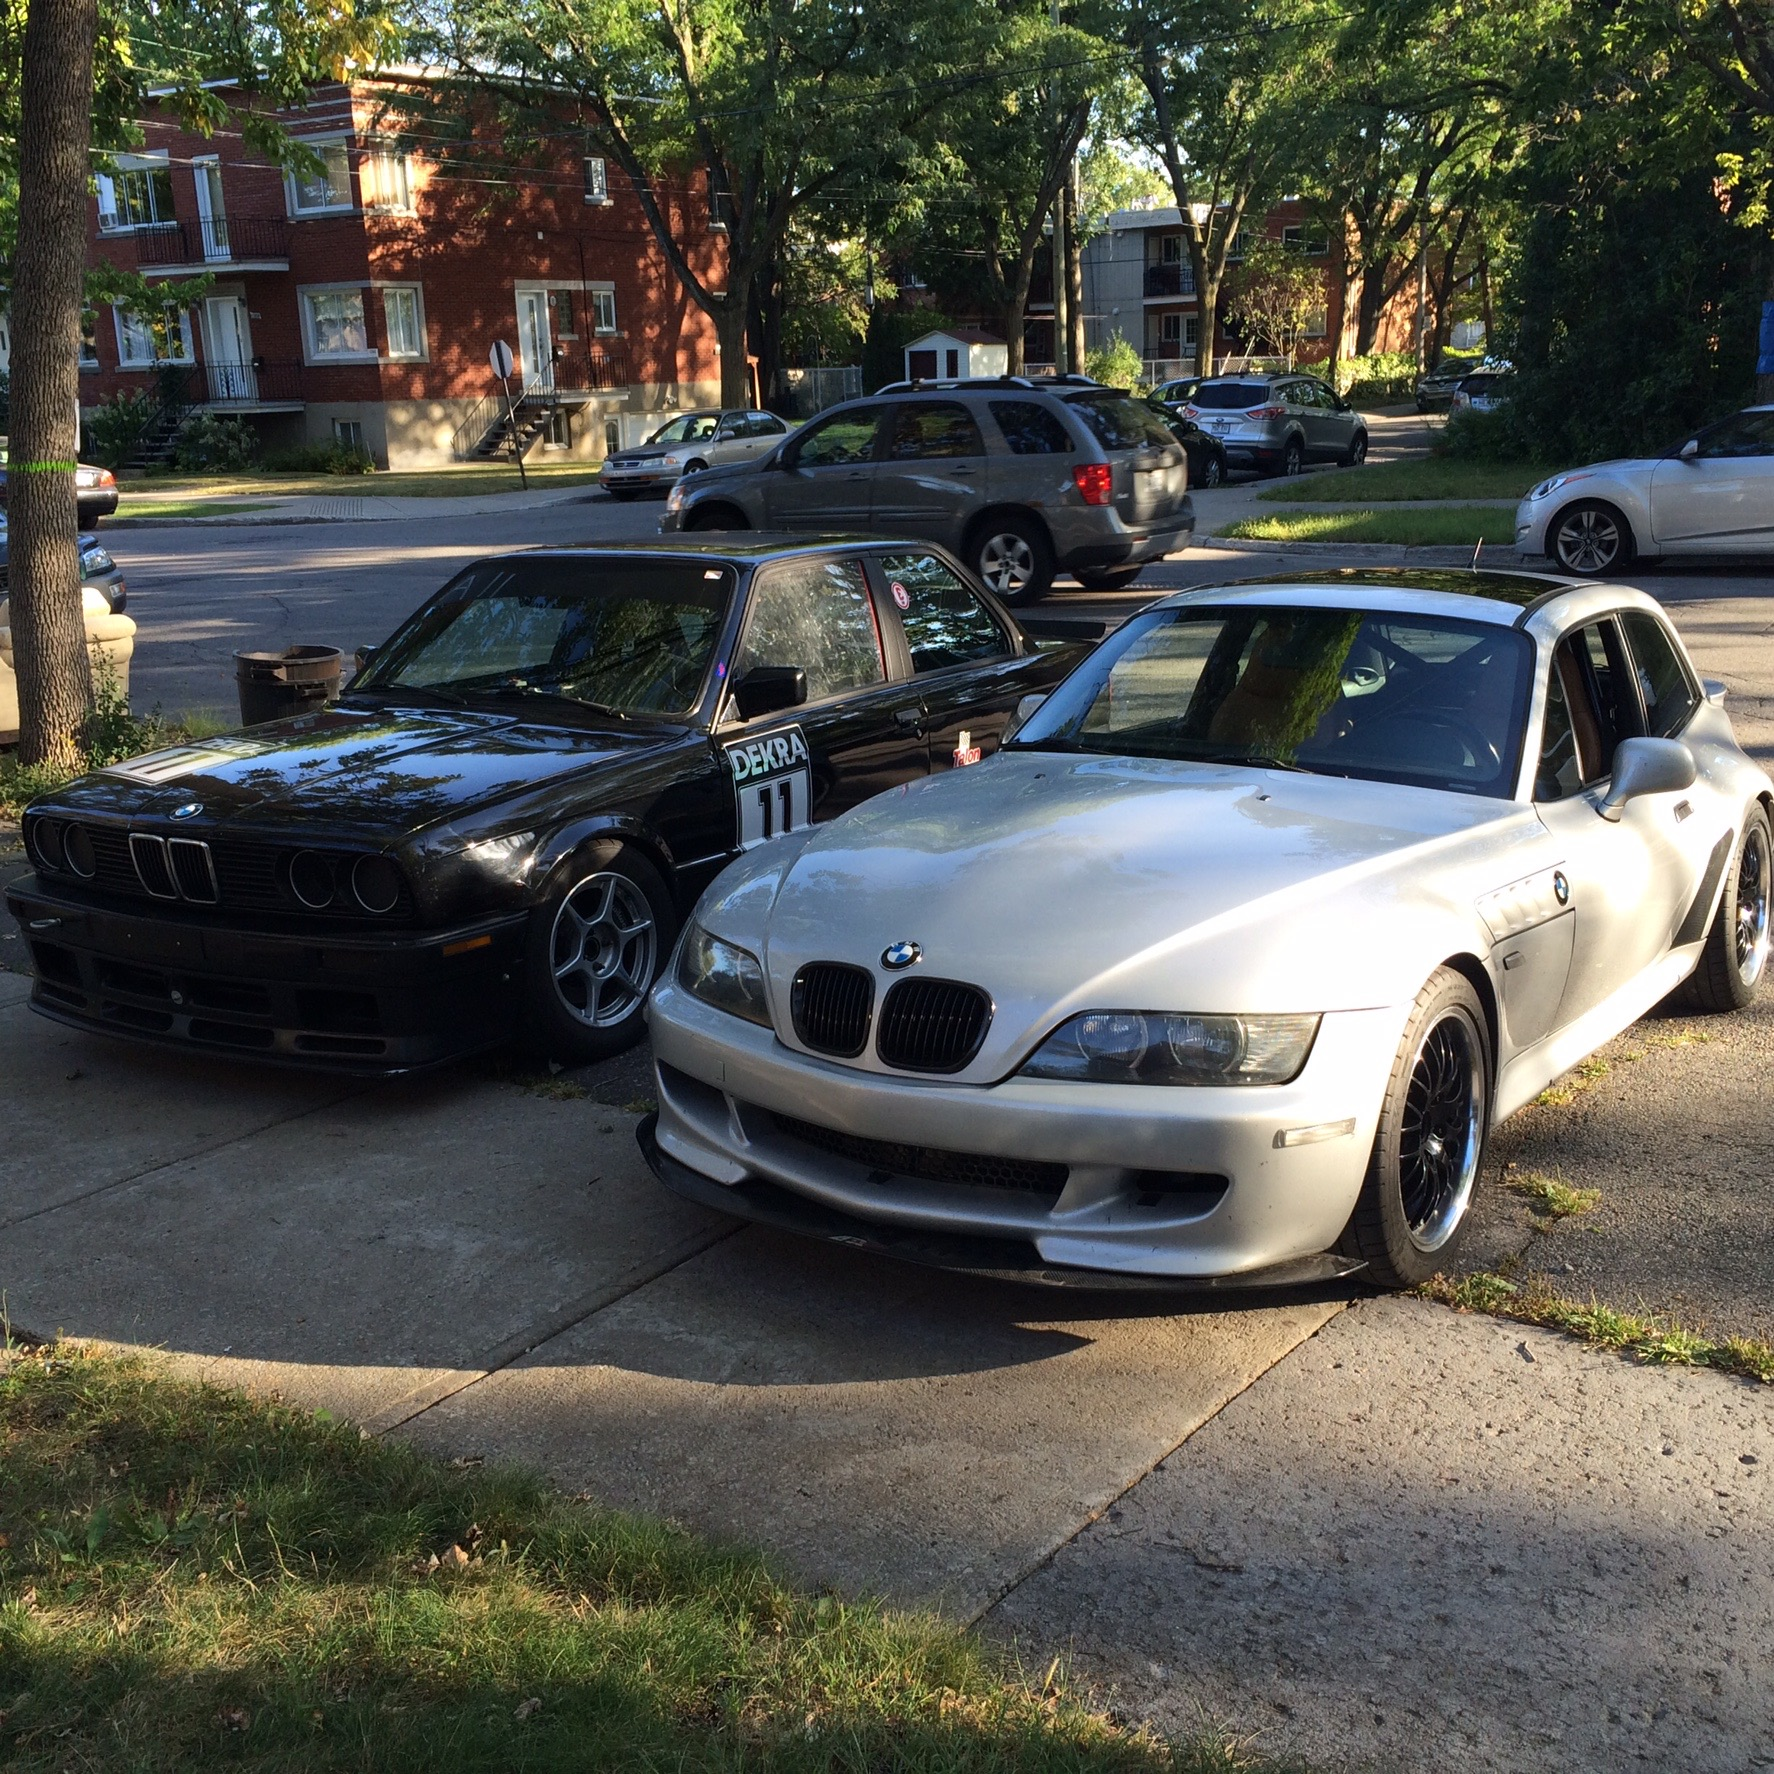 Bmw Z3 M Coupe For Sale: BMW Z3 Coupe 2001 For Sale In Montreal